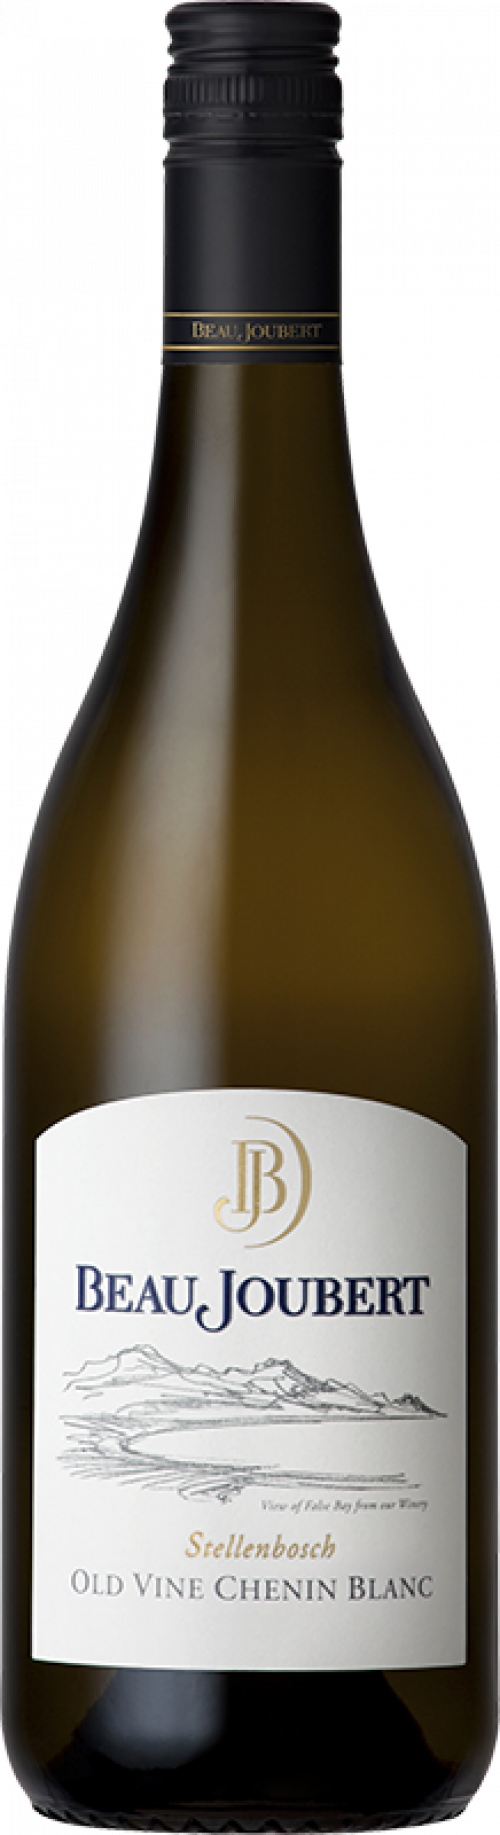 Beau Joubert Old Vine Chenin Blanc 750ml